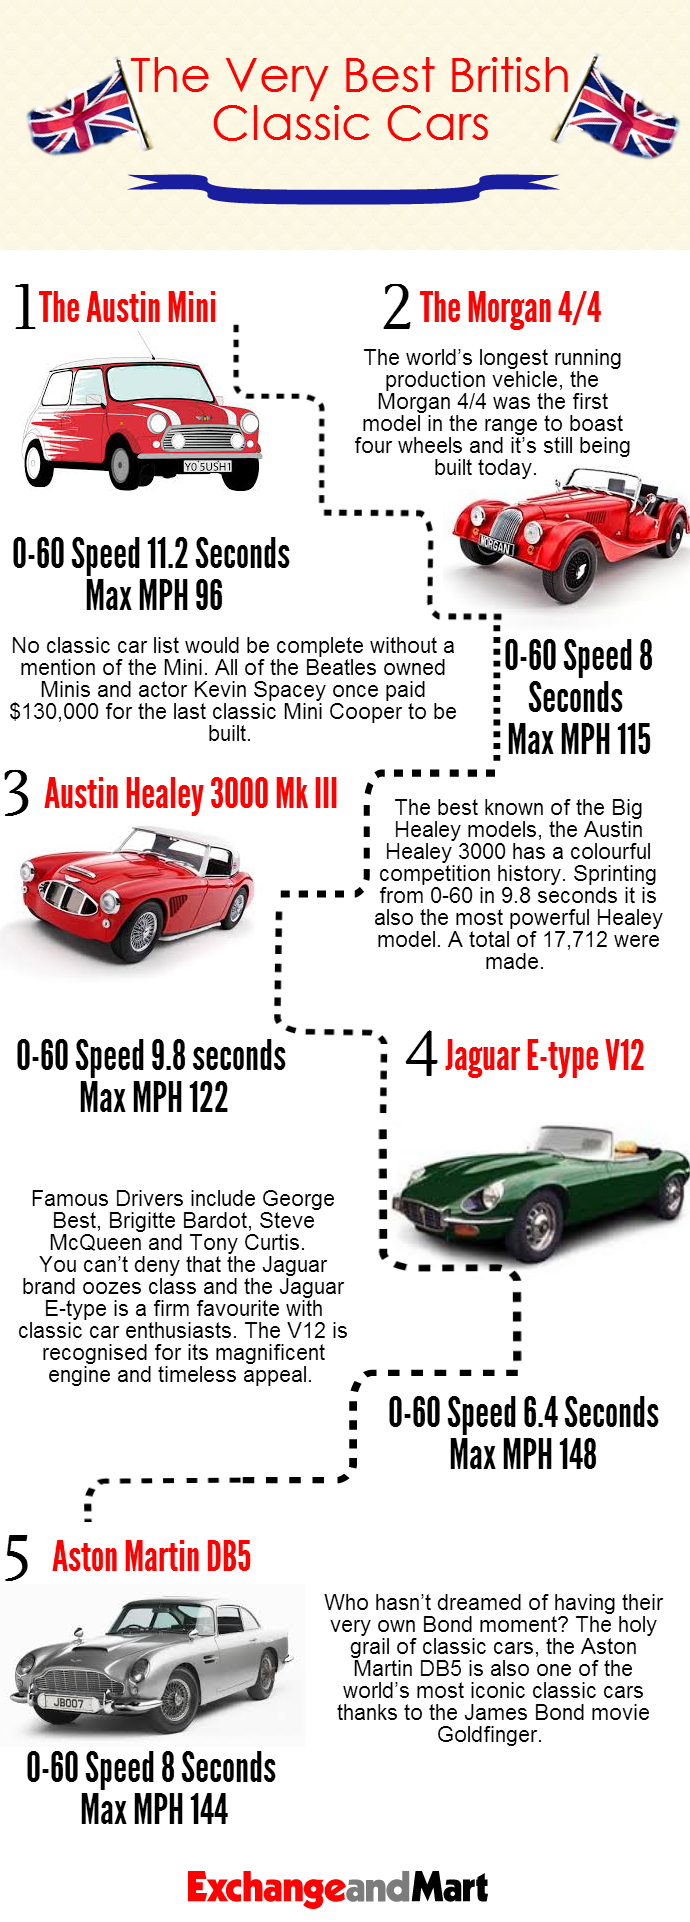 the very best british classic cars